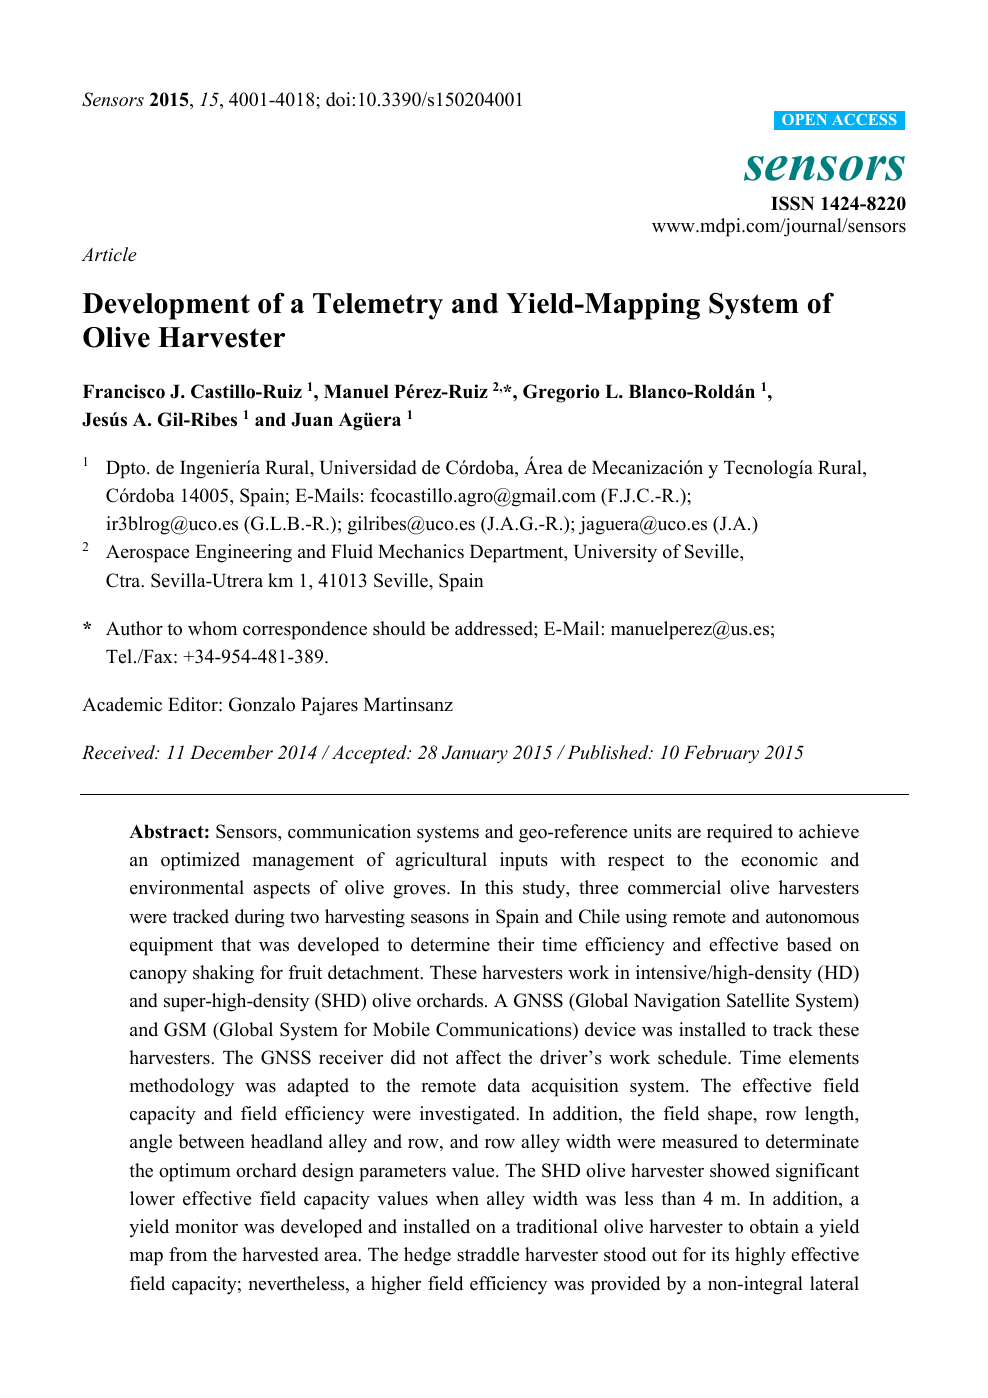 Development of a Telemetry and Yield-Mapping System of Olive